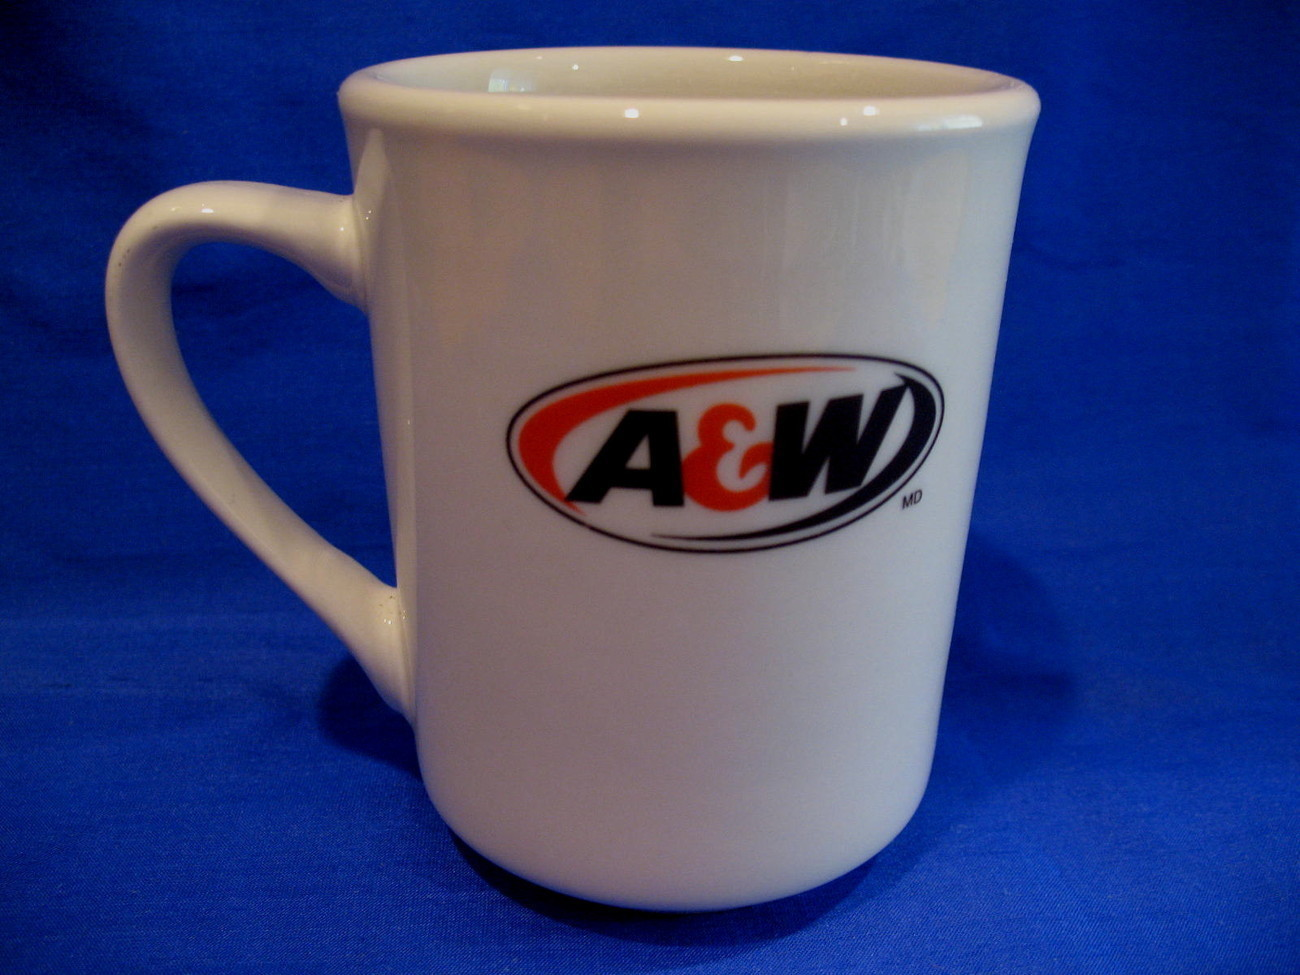 A&W Coffee Mug Tea Cup Vintage Drinking Souvenir Collectible Advertising